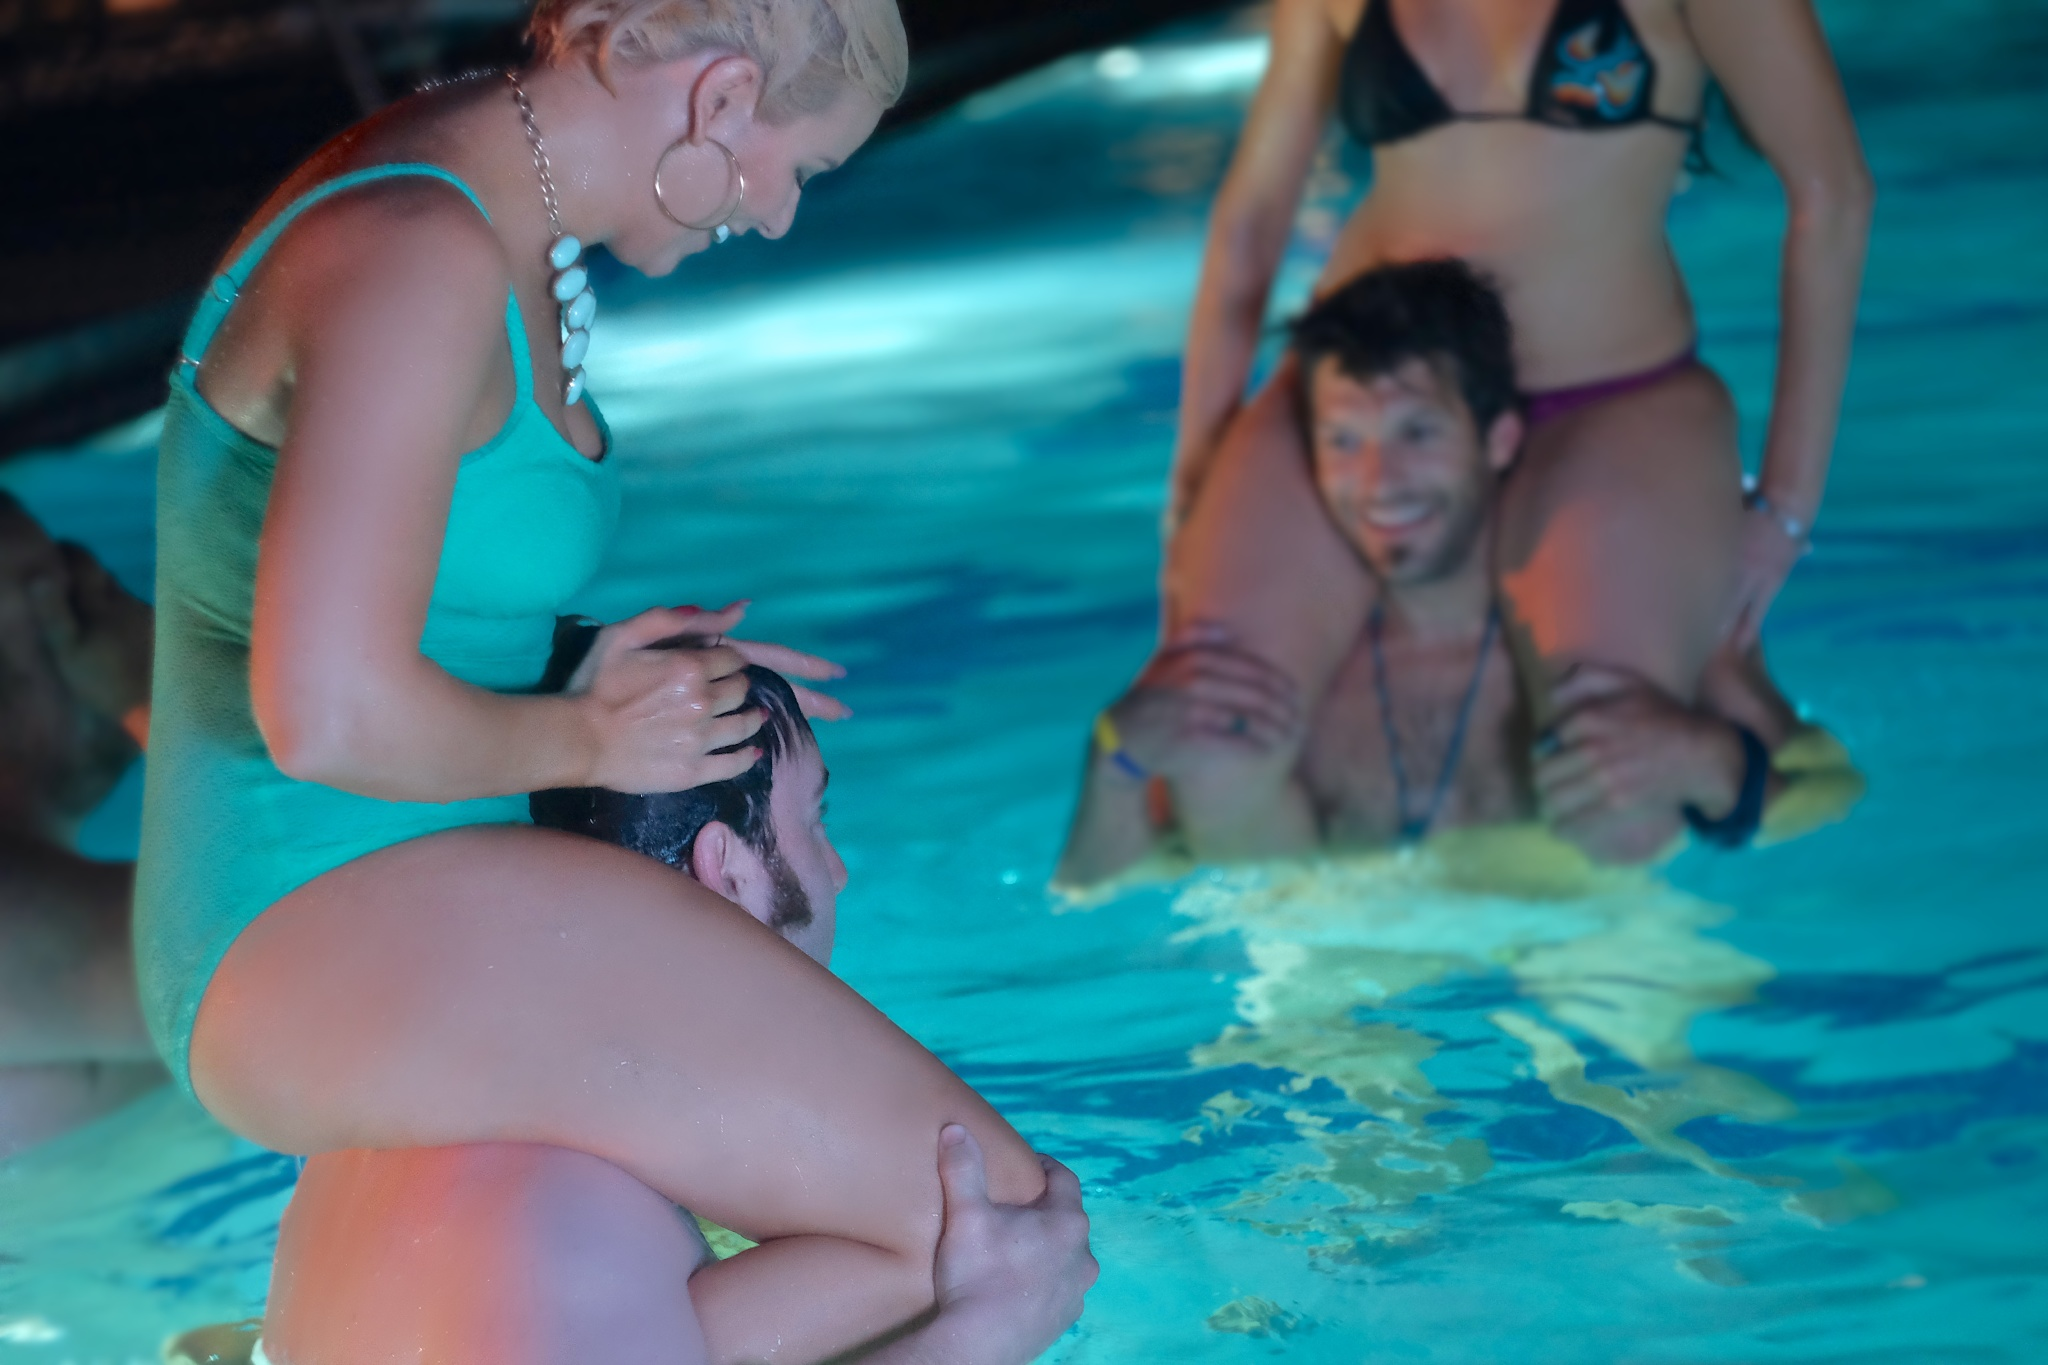 Everybody in the pool! Pool scene from Buck Naked featuring Nick Brennan, Molly Anne Wilson, Vanessa Boyer and Lance Salsgiver